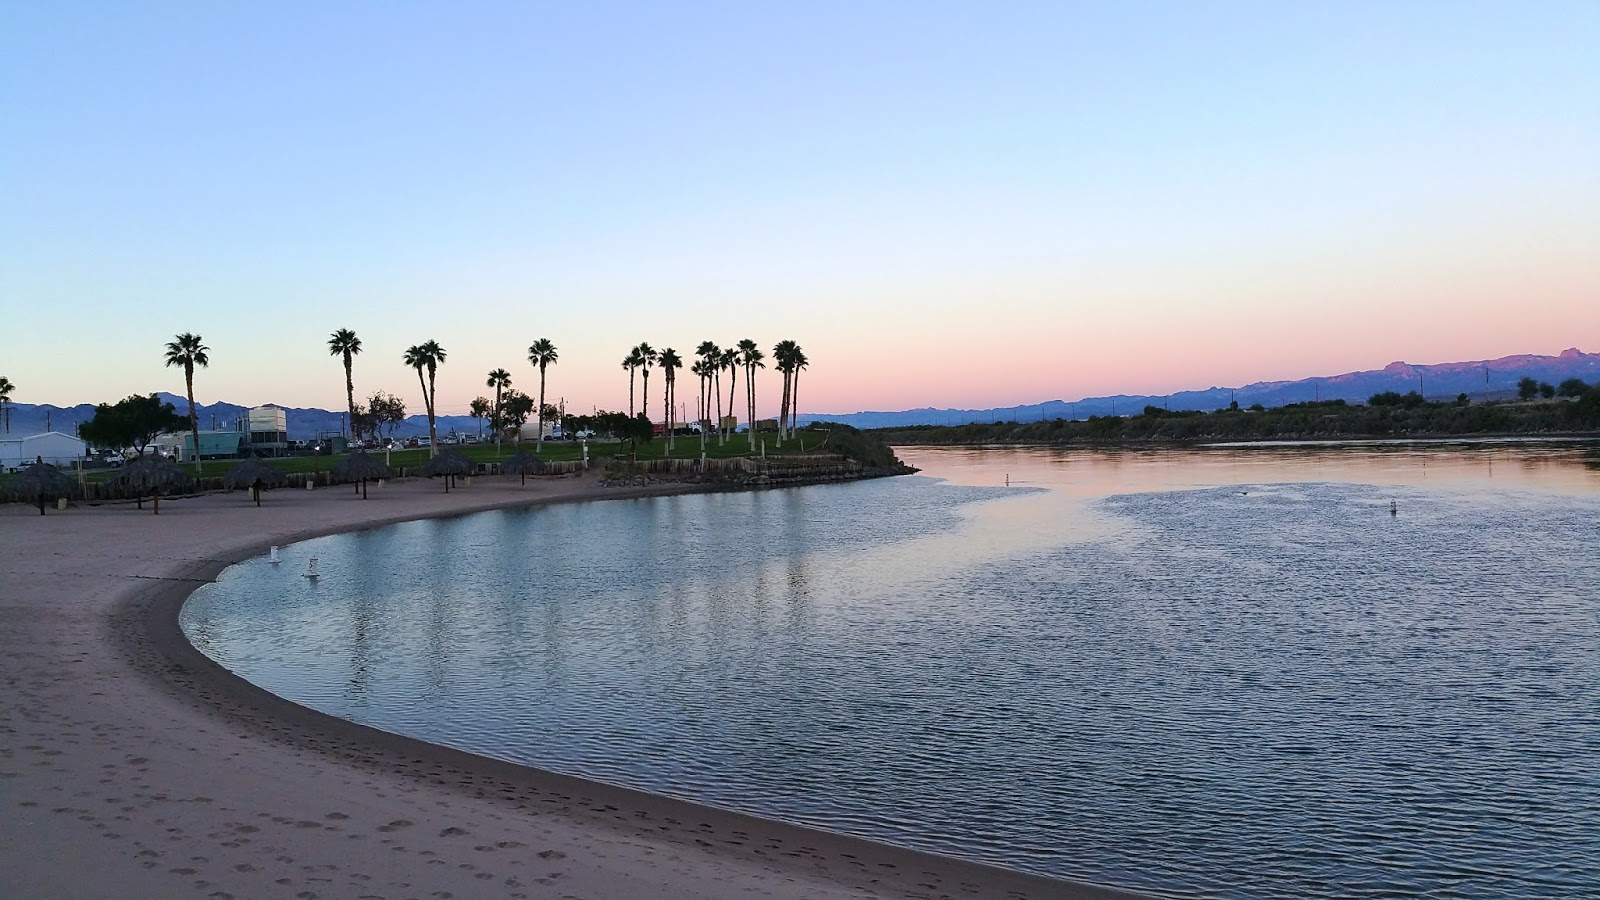 Colorado River At Sunset By The Avi Resort